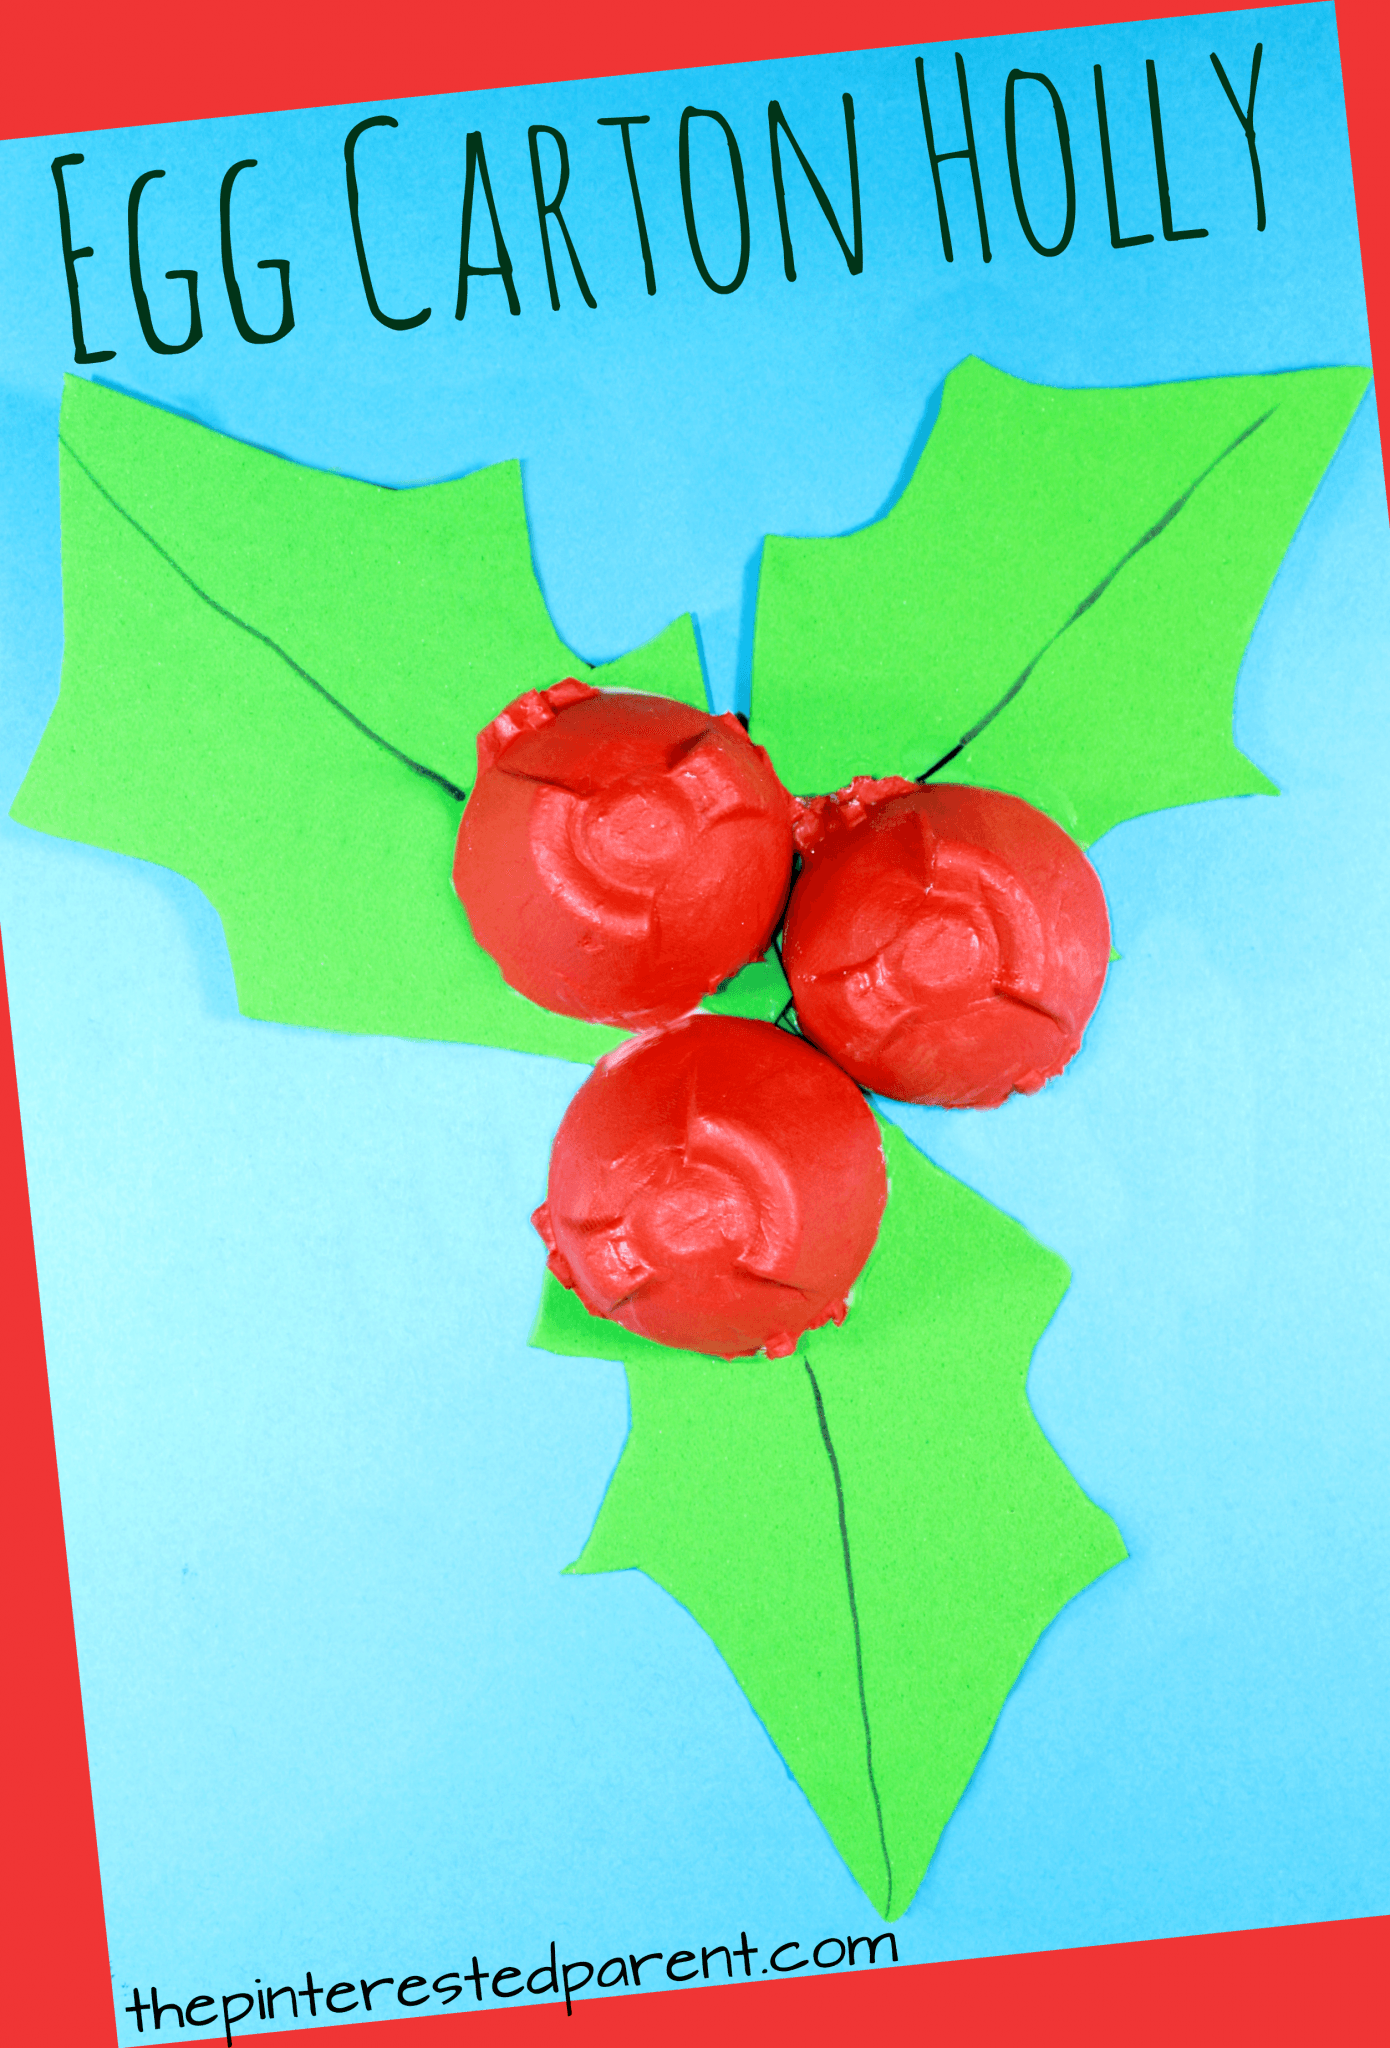 Egg Carton Holly Arts and crafts for kids and preschooler for the